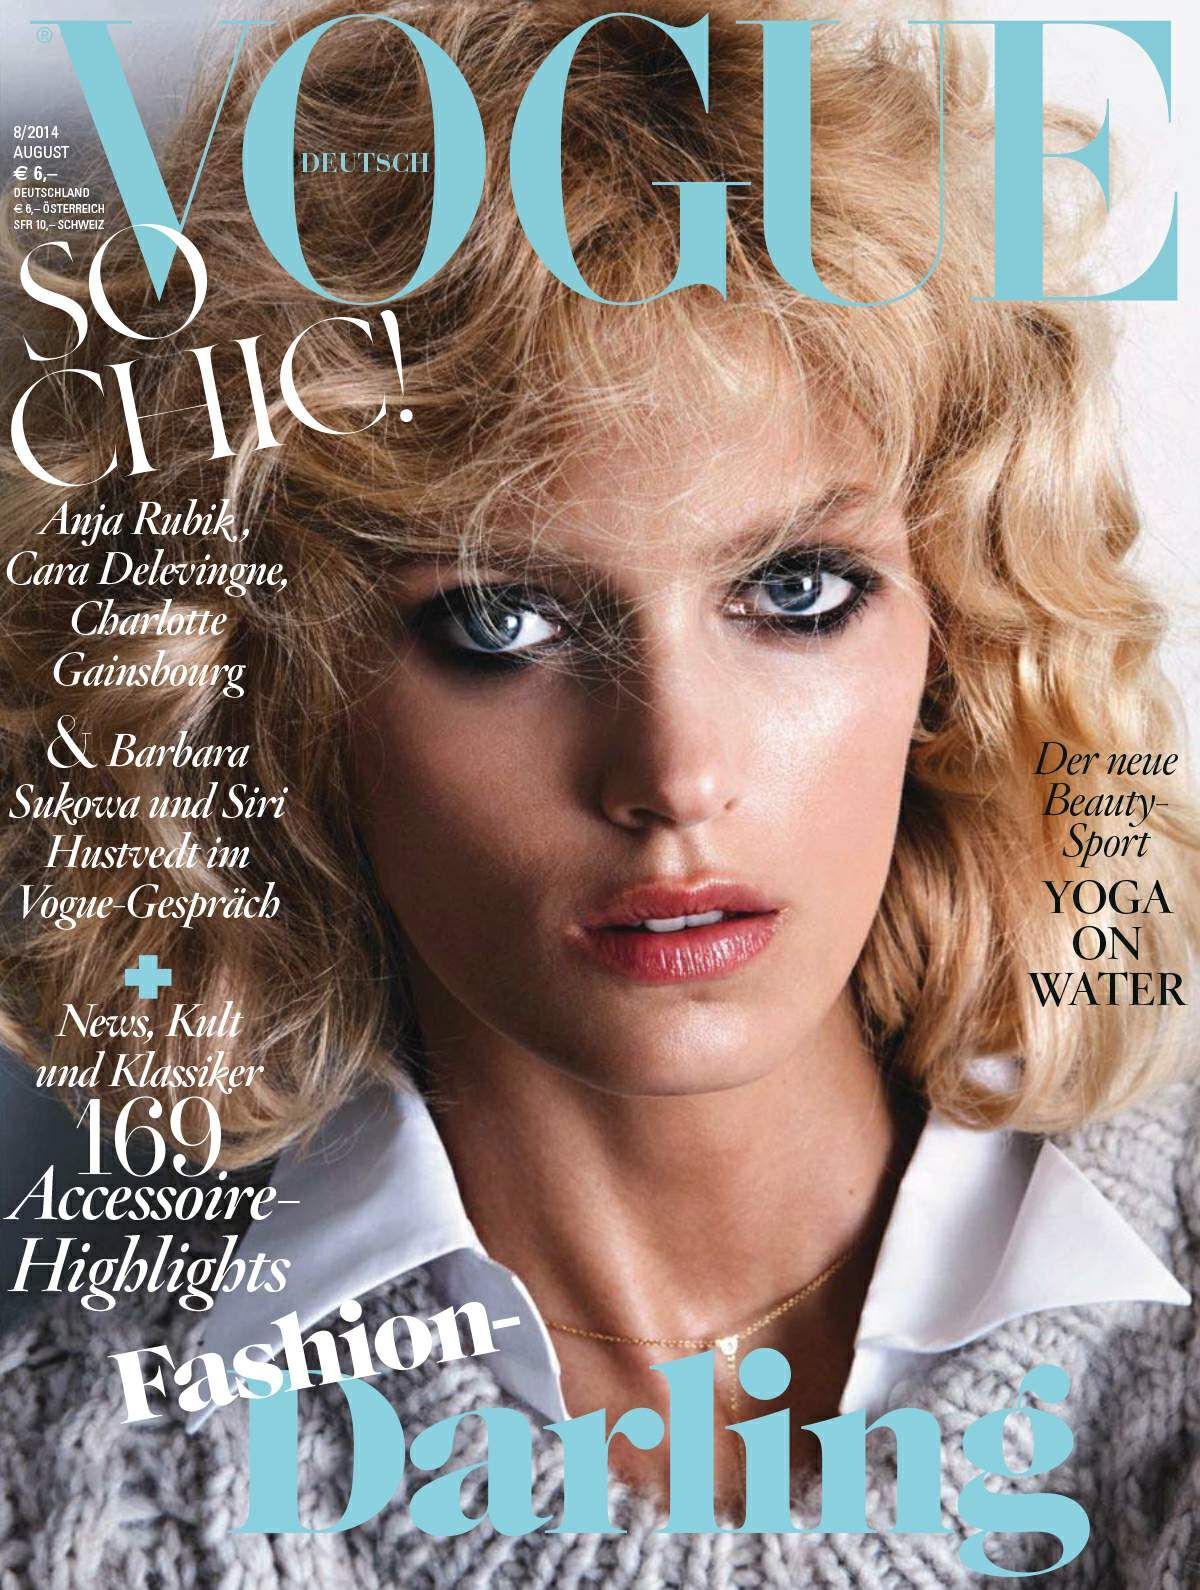 ANJA RUBIK in Vogue Magazine, Germany August 2014 Issue